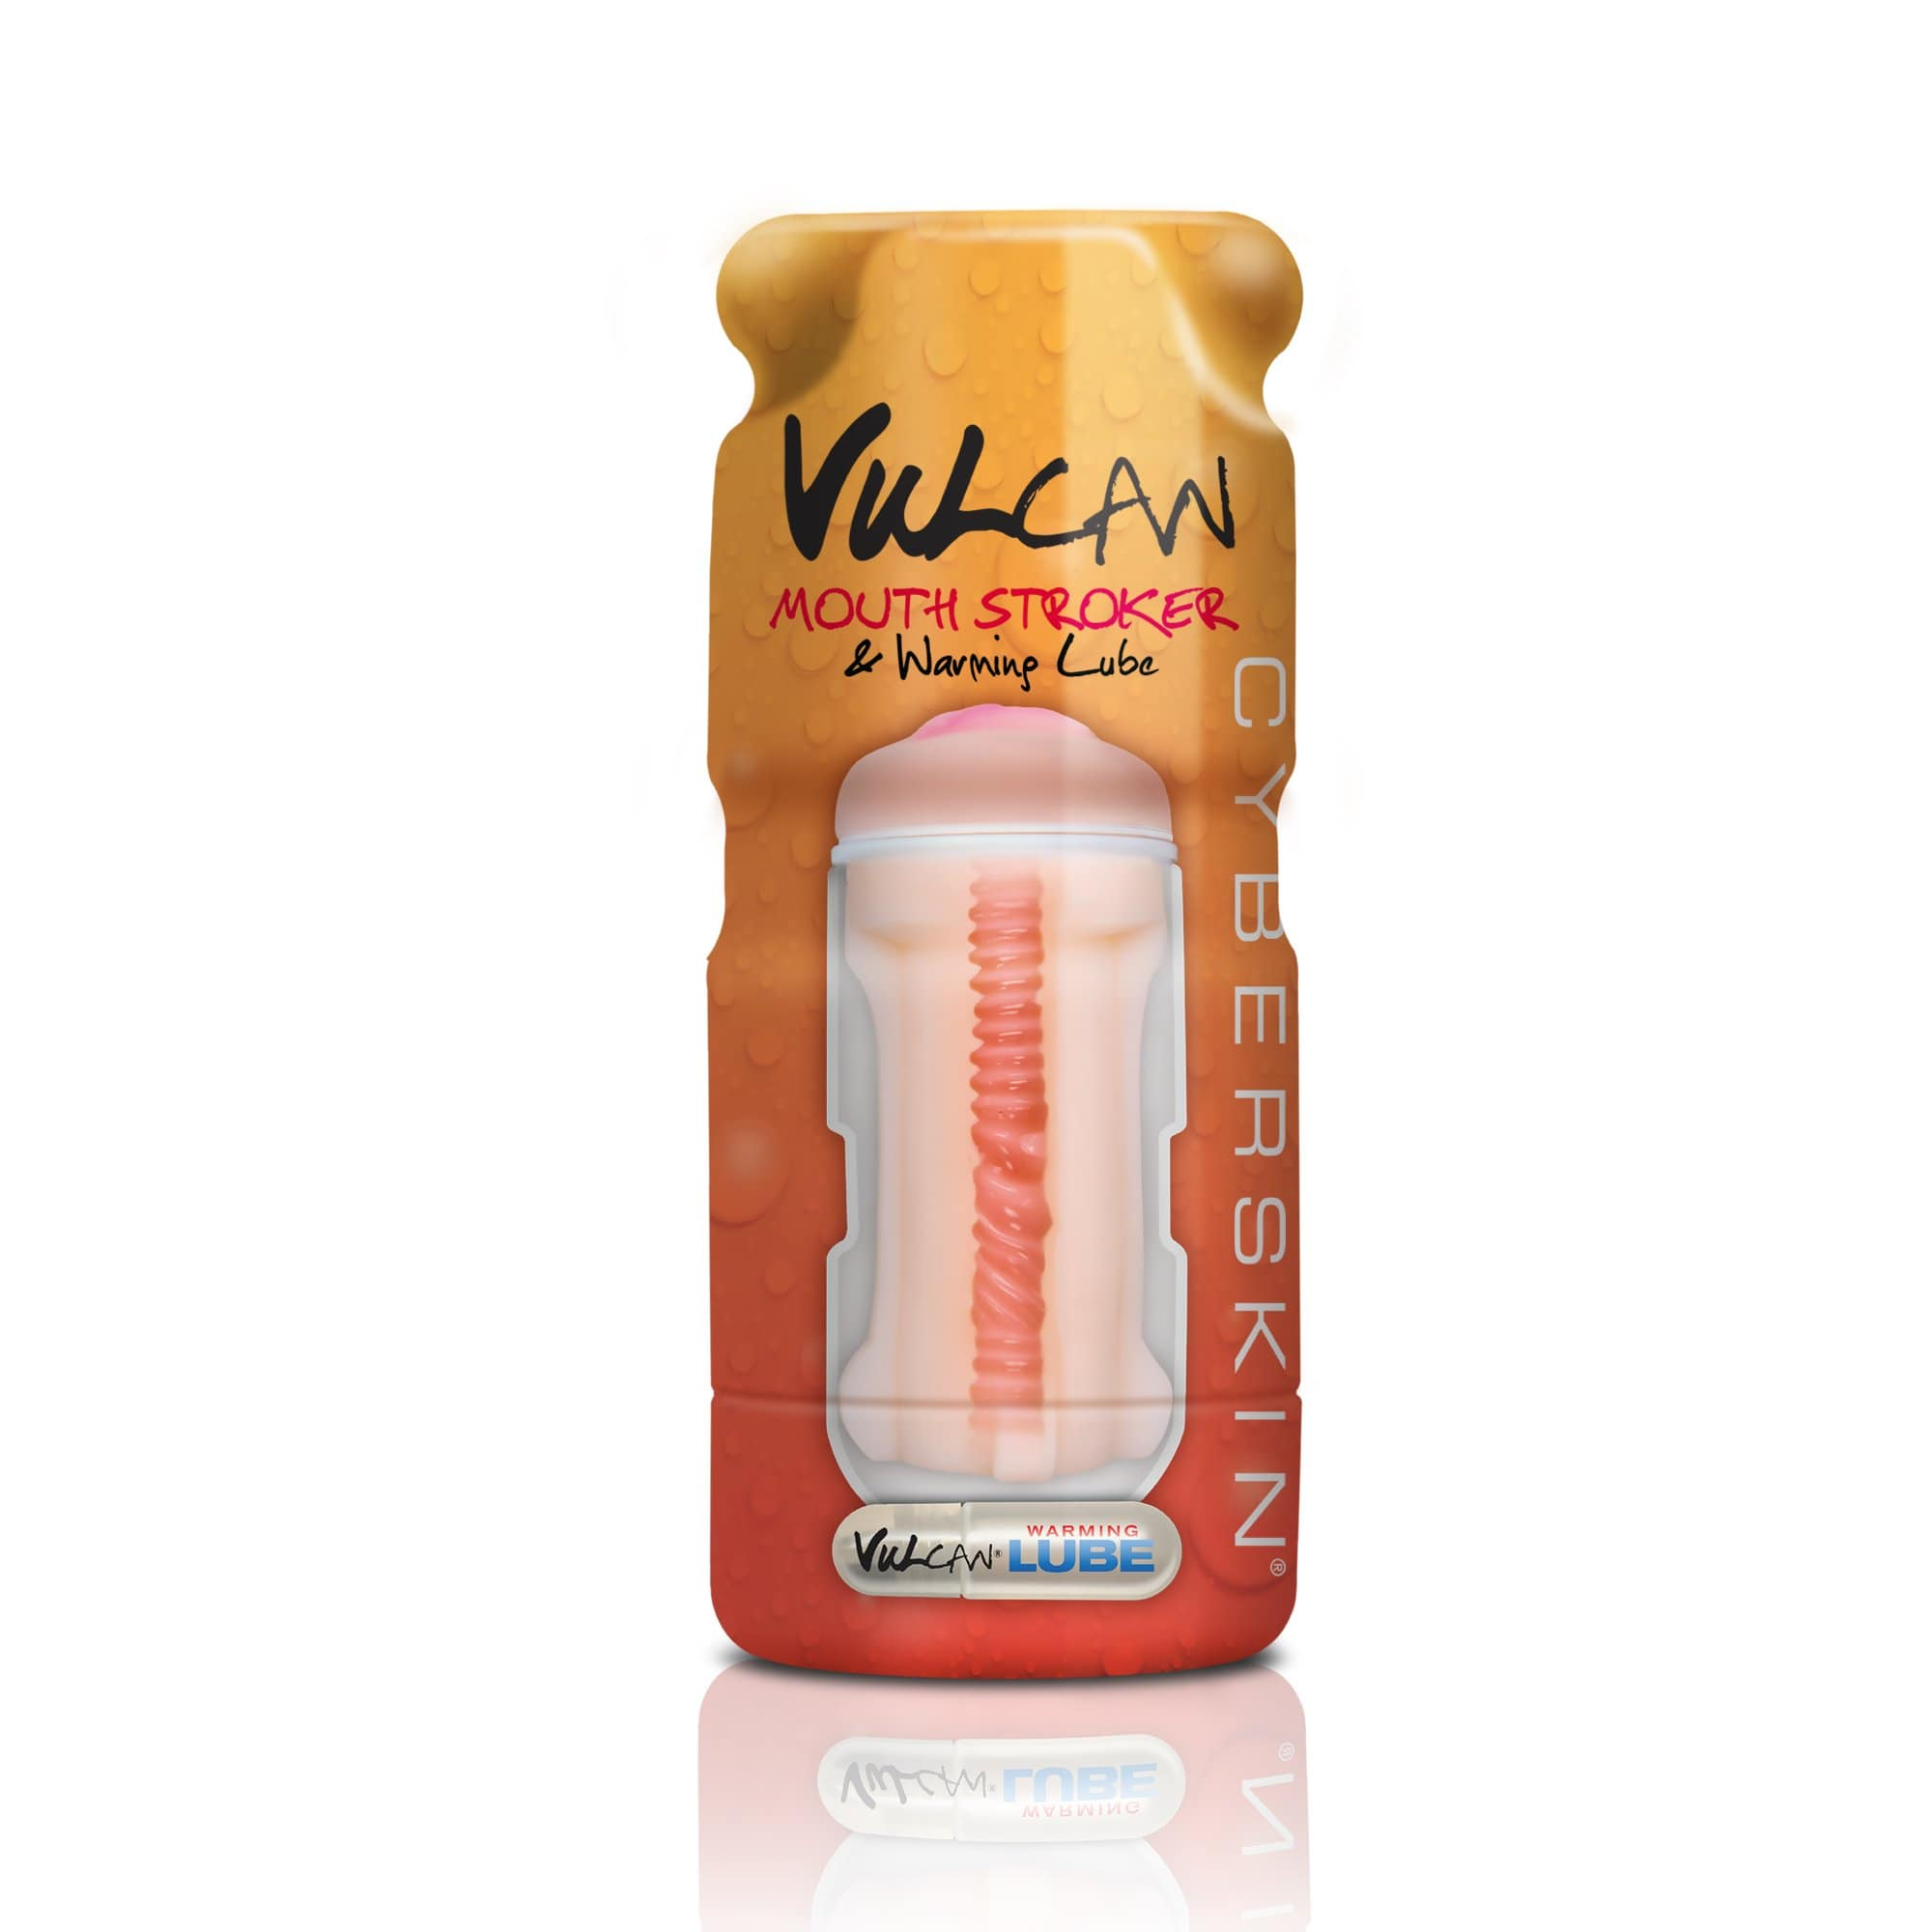 vulcan cyberskin mouth stroker warming lube light